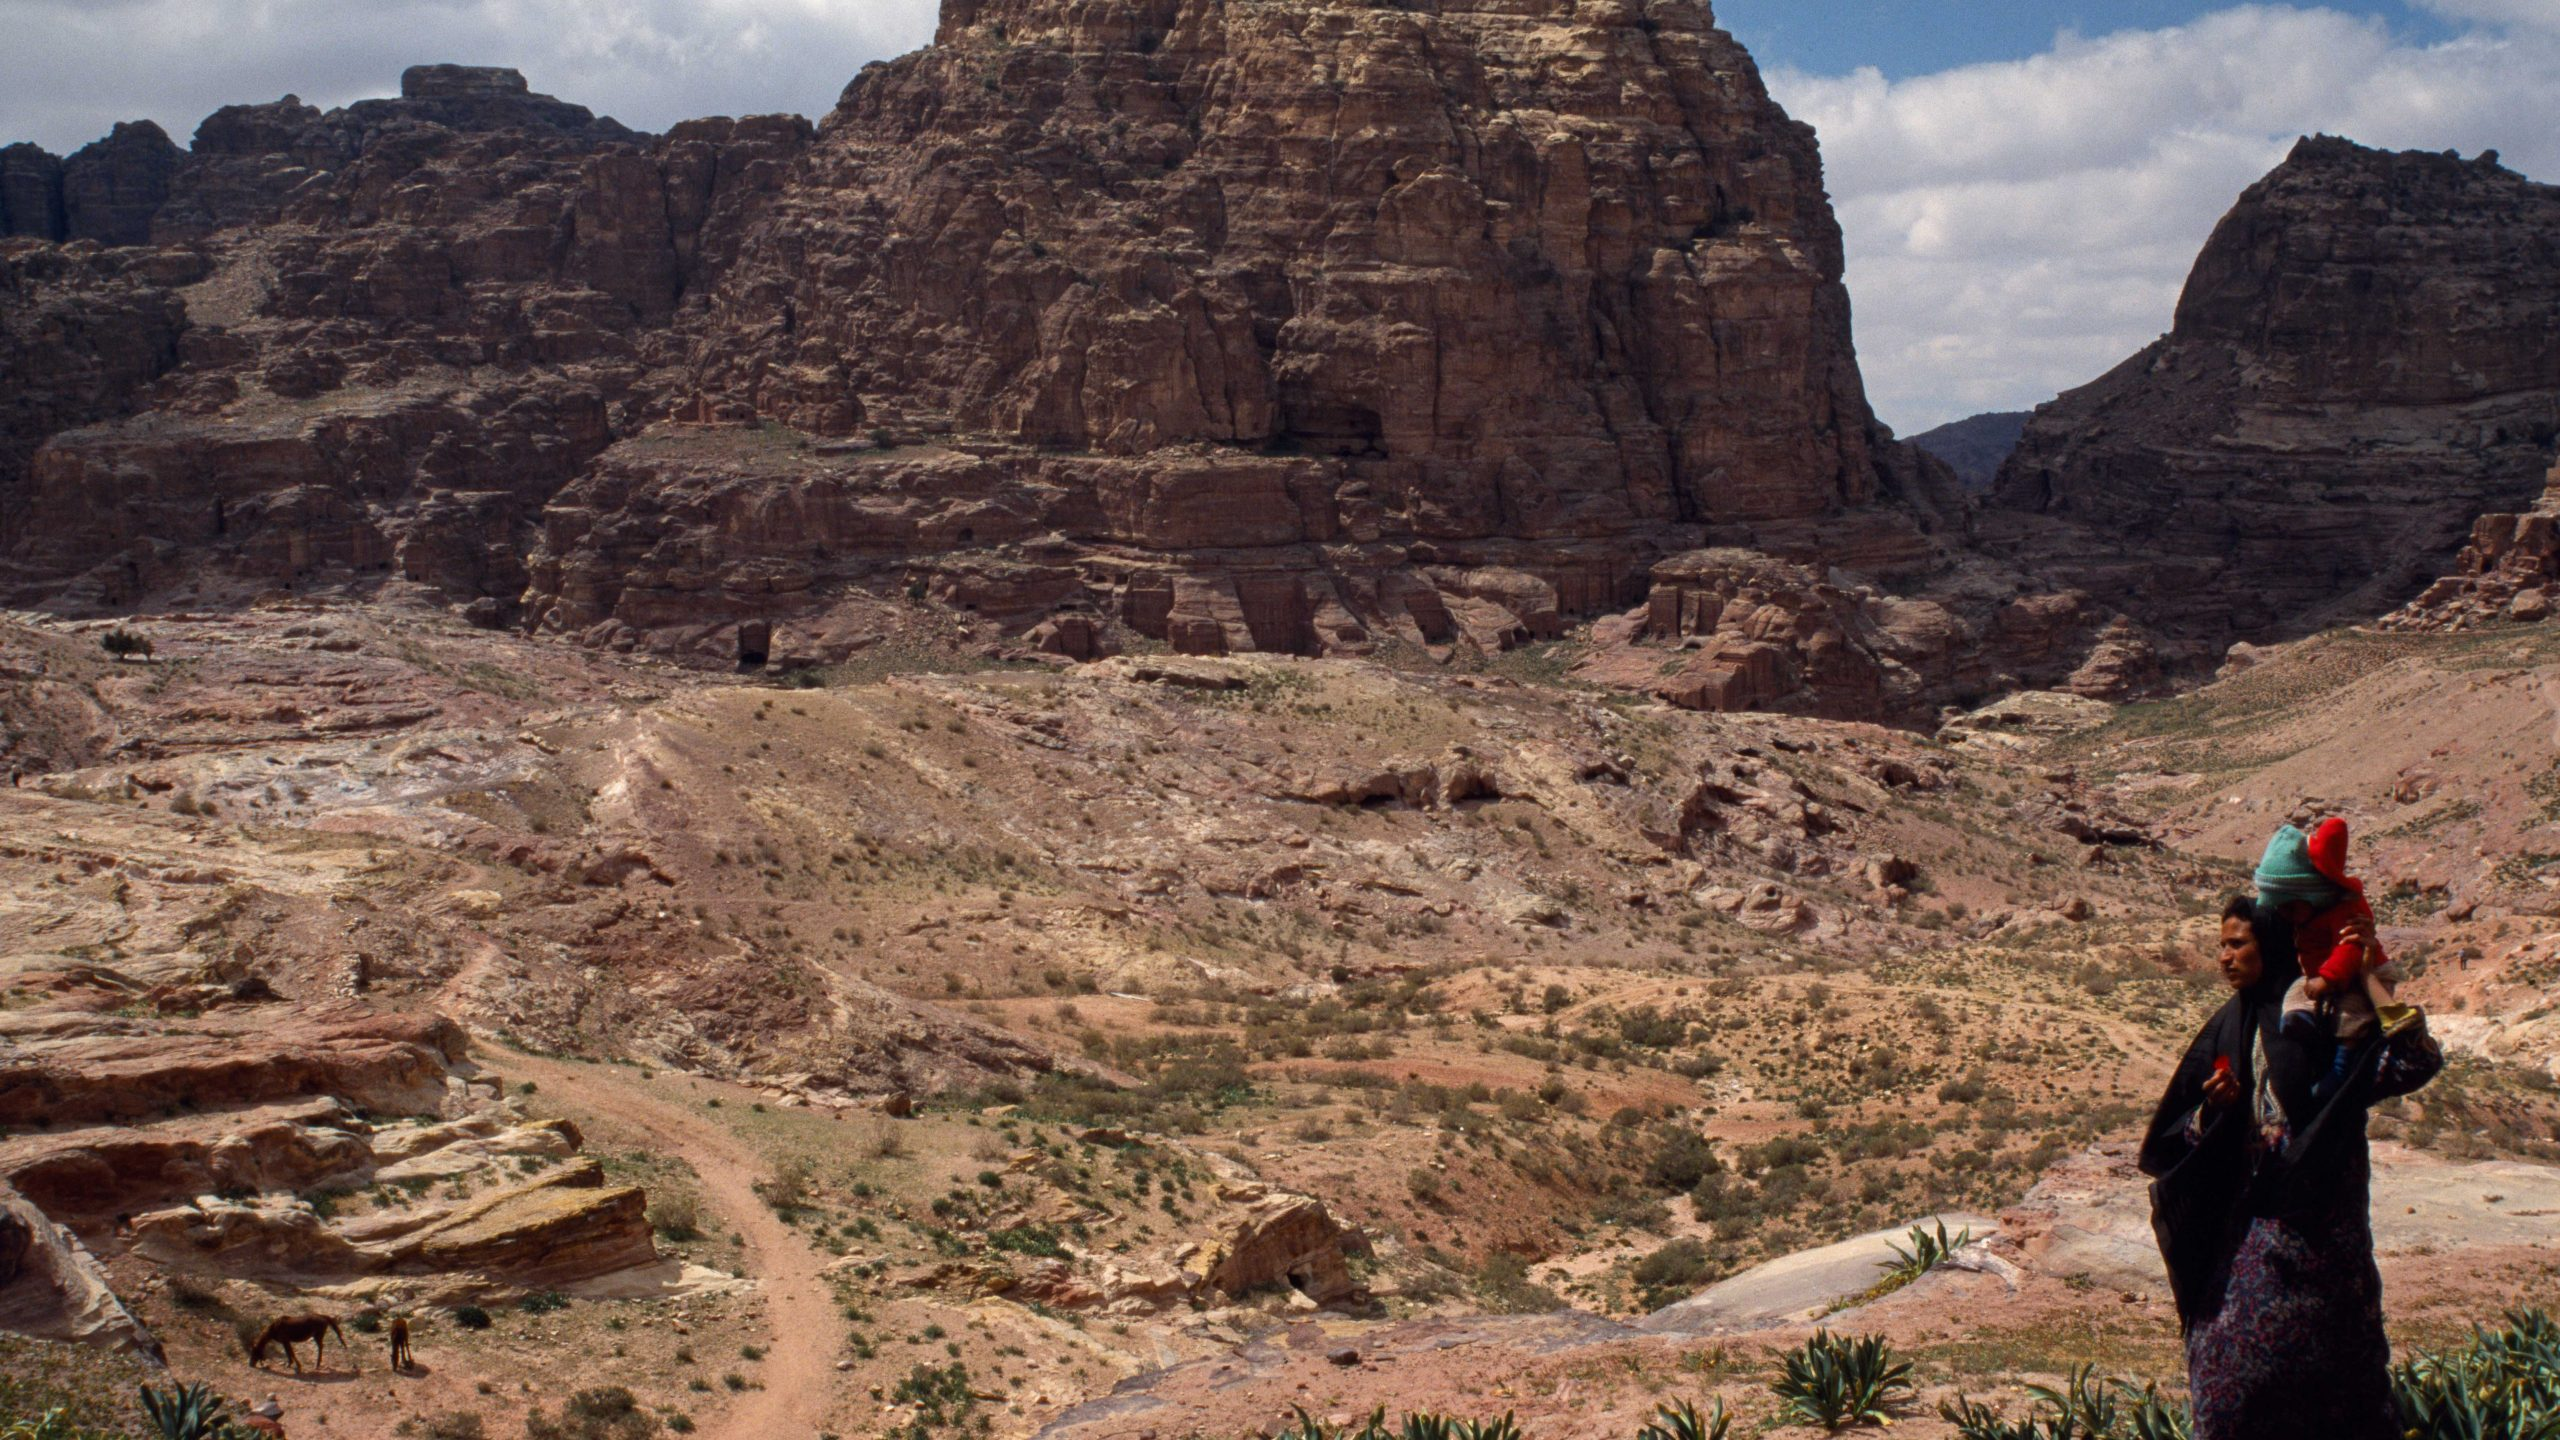 A Bedouin carries a child home amidst the spectacular landscapes of ancient Petra, Jordan.